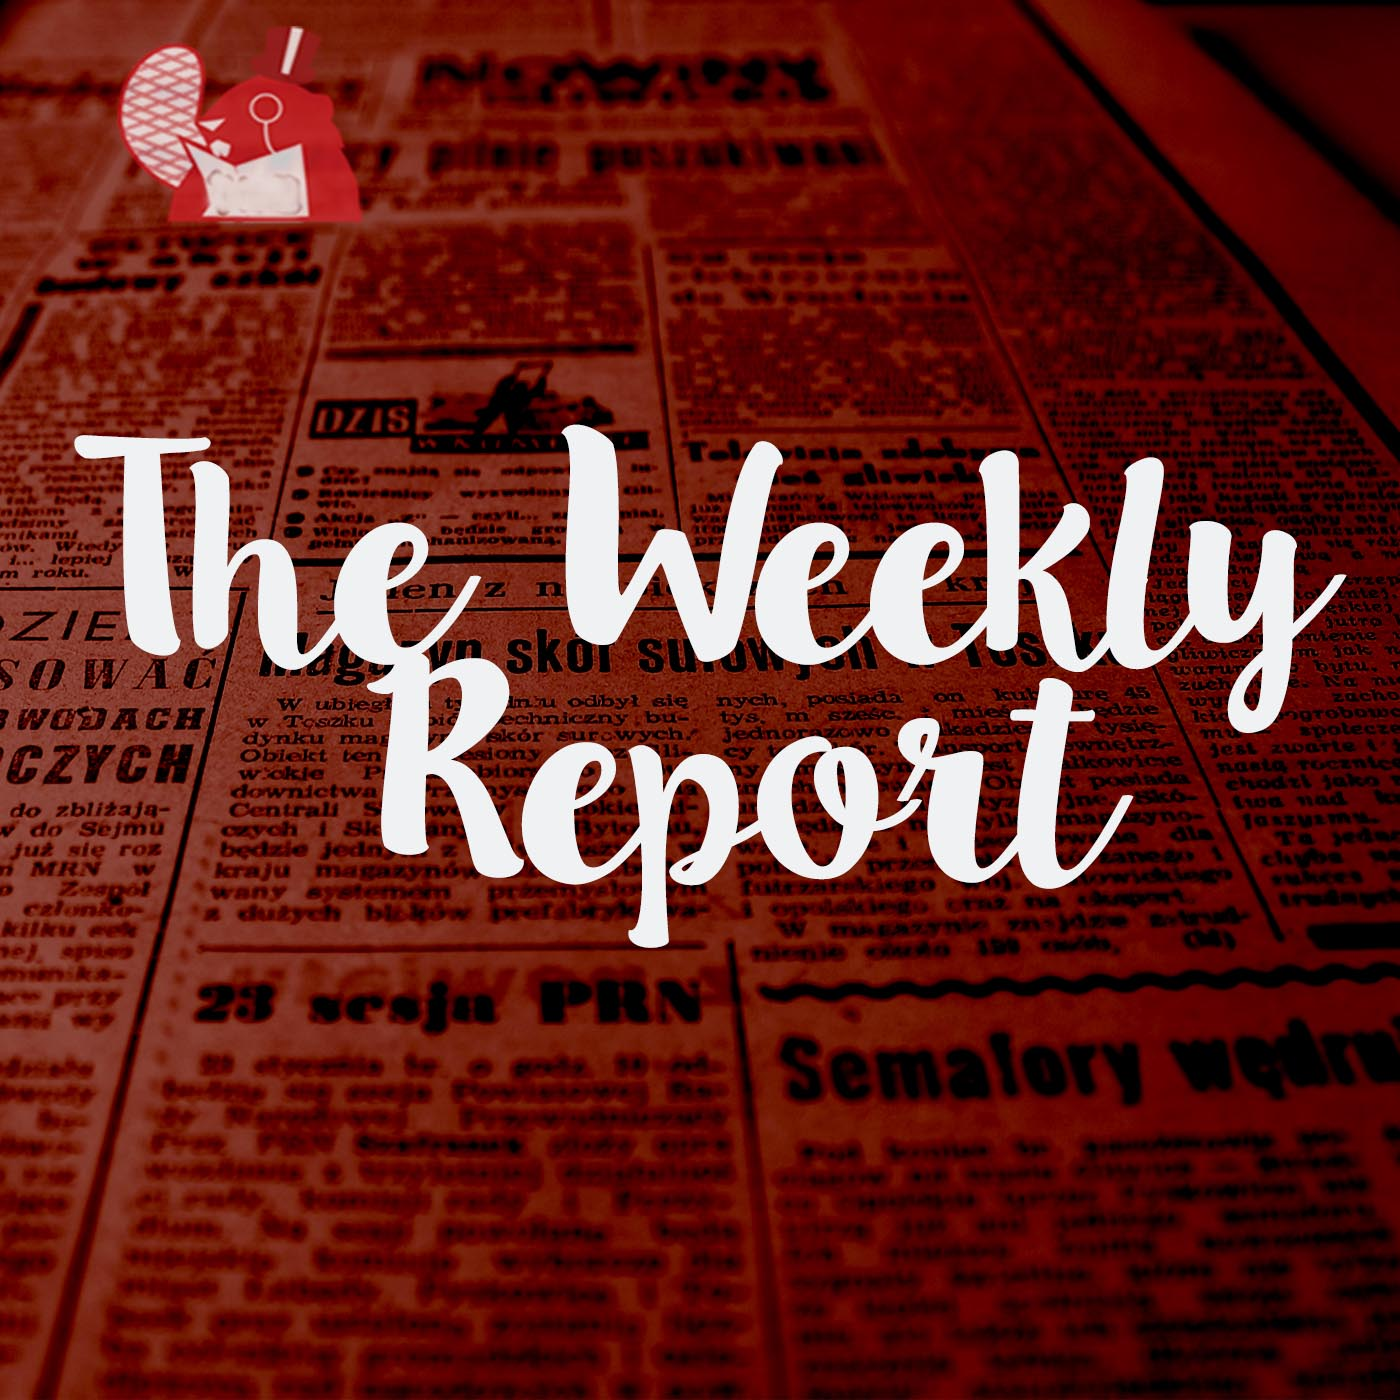 The Beaverton Weekly Report   Listen to the Most Popular